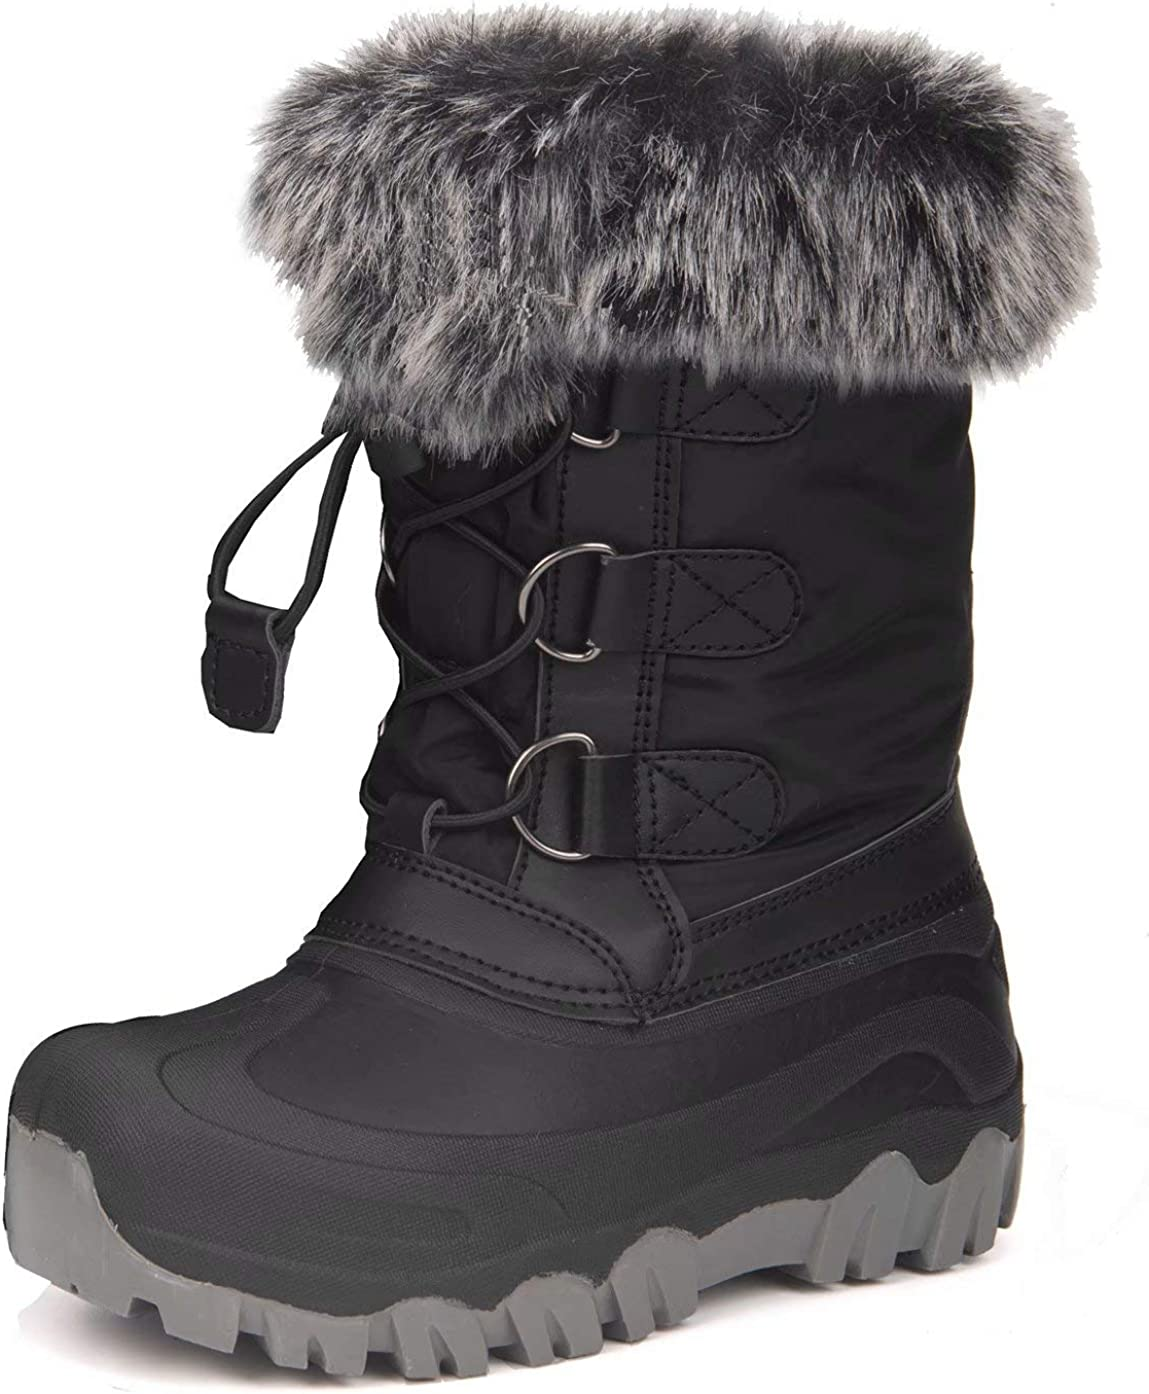 HugRain Warm Winter Outstanding Don't miss the campaign Snow Boots with for Toddler Fur K Lined Faux